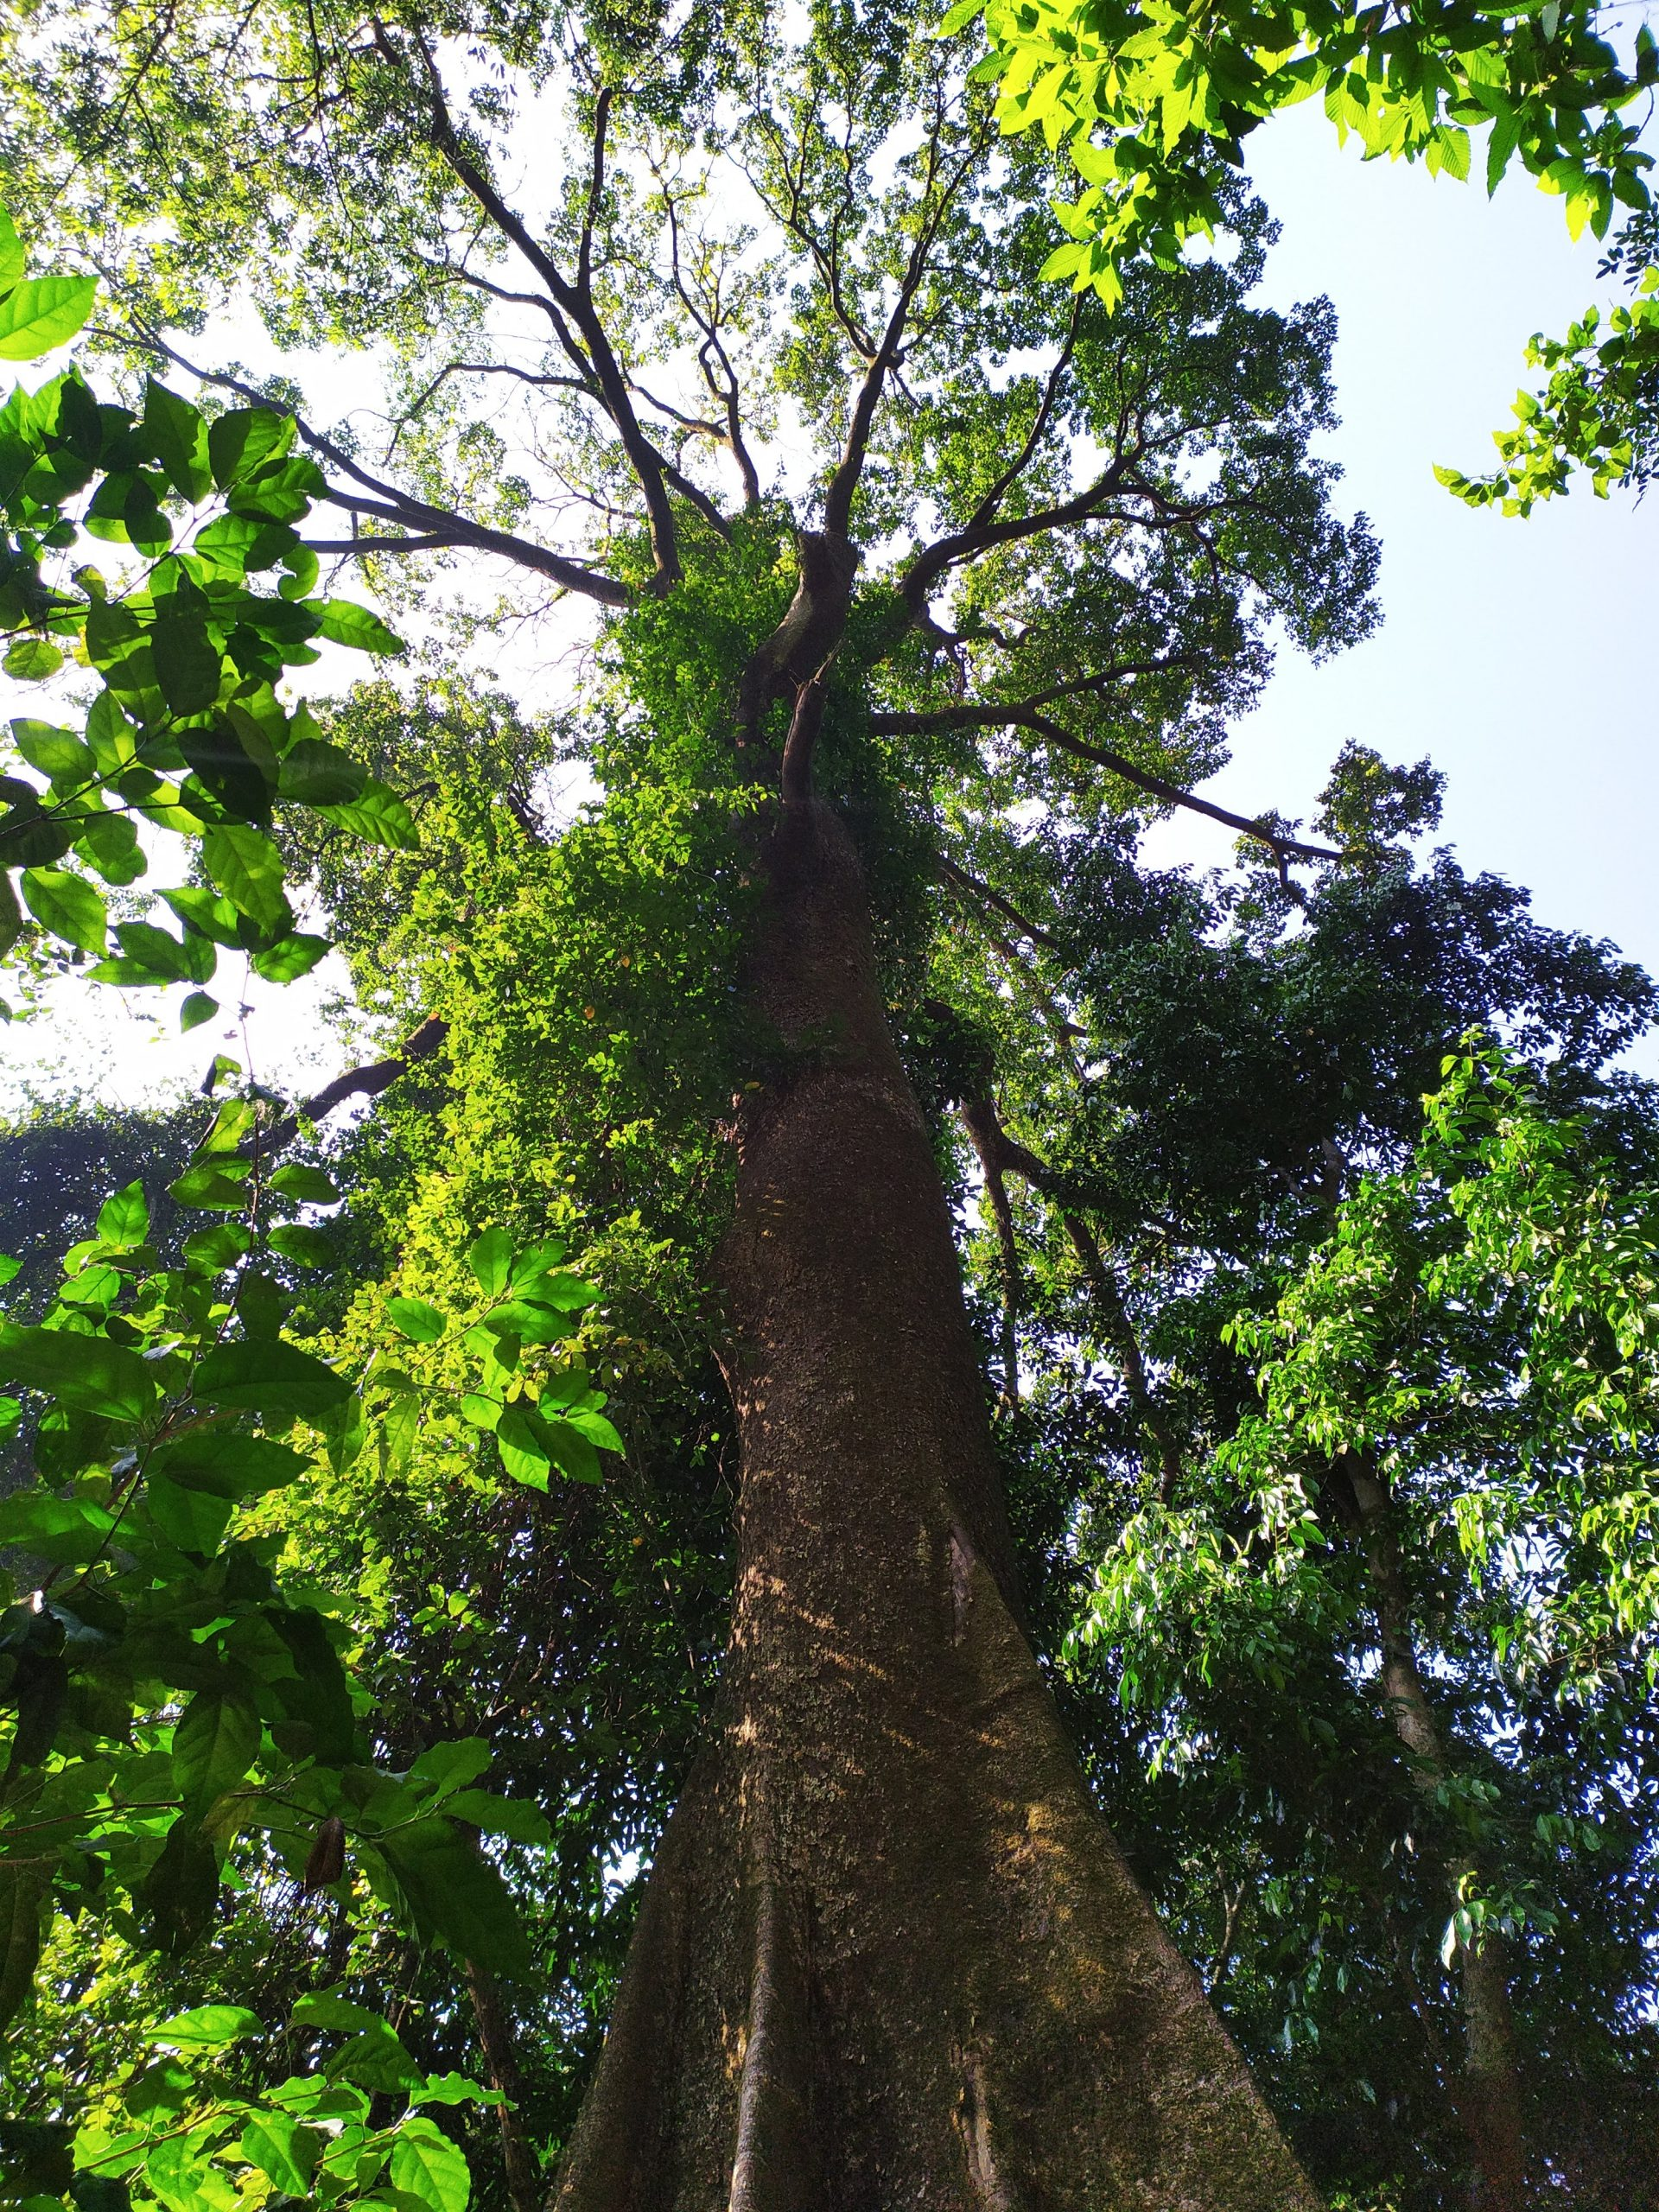 A tall tree with many branches